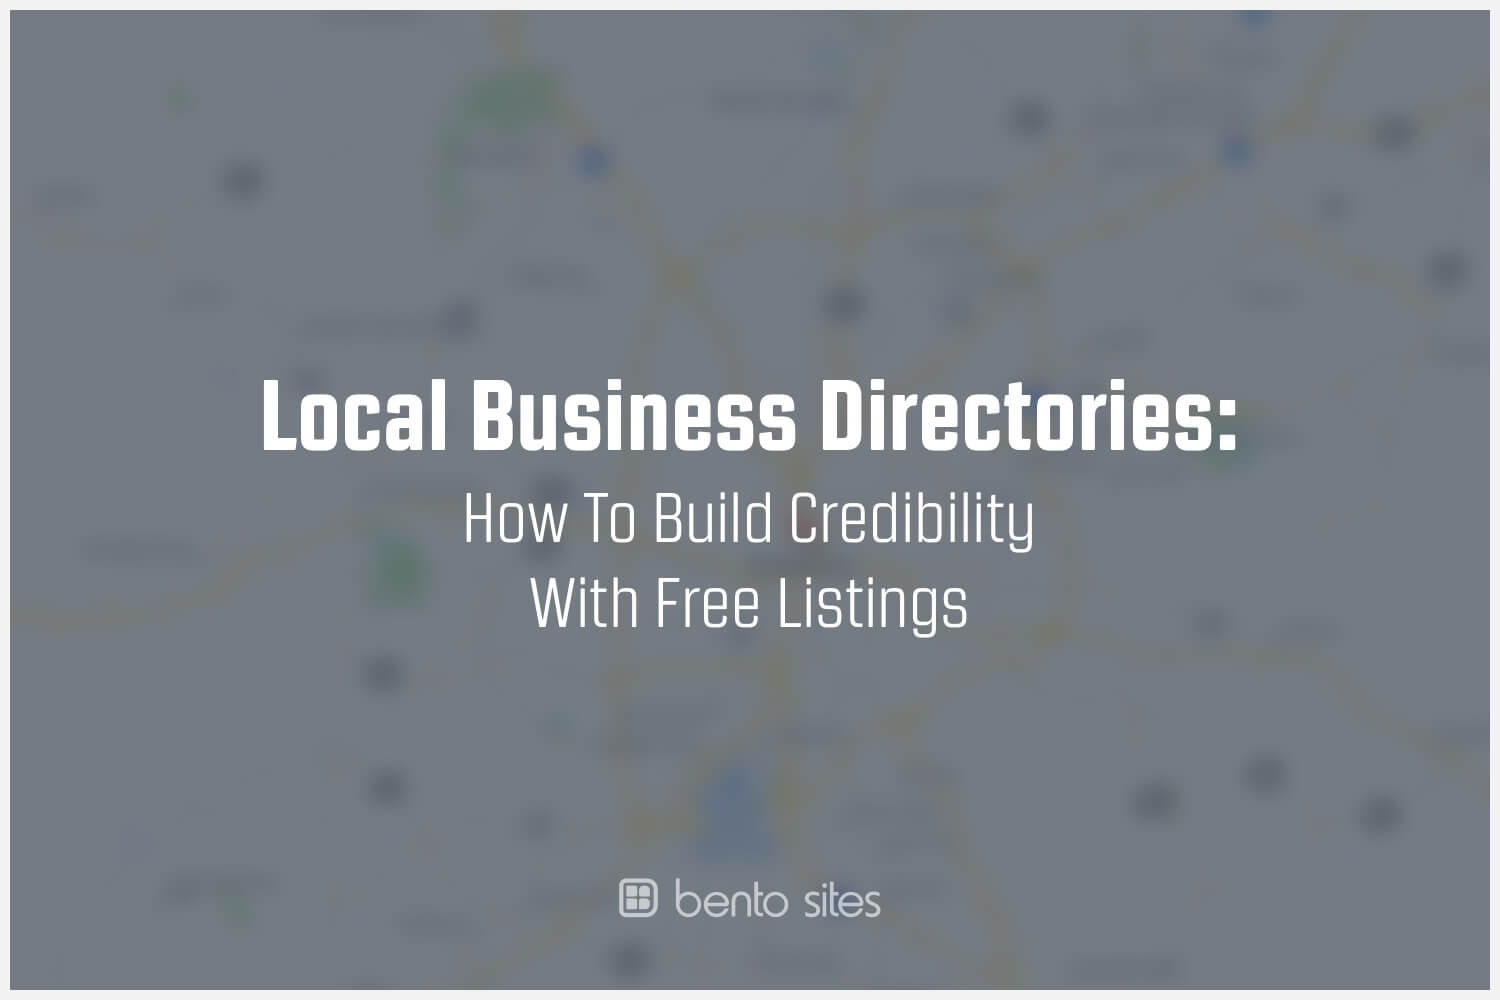 Local Business Directories: How To Build Credibility With